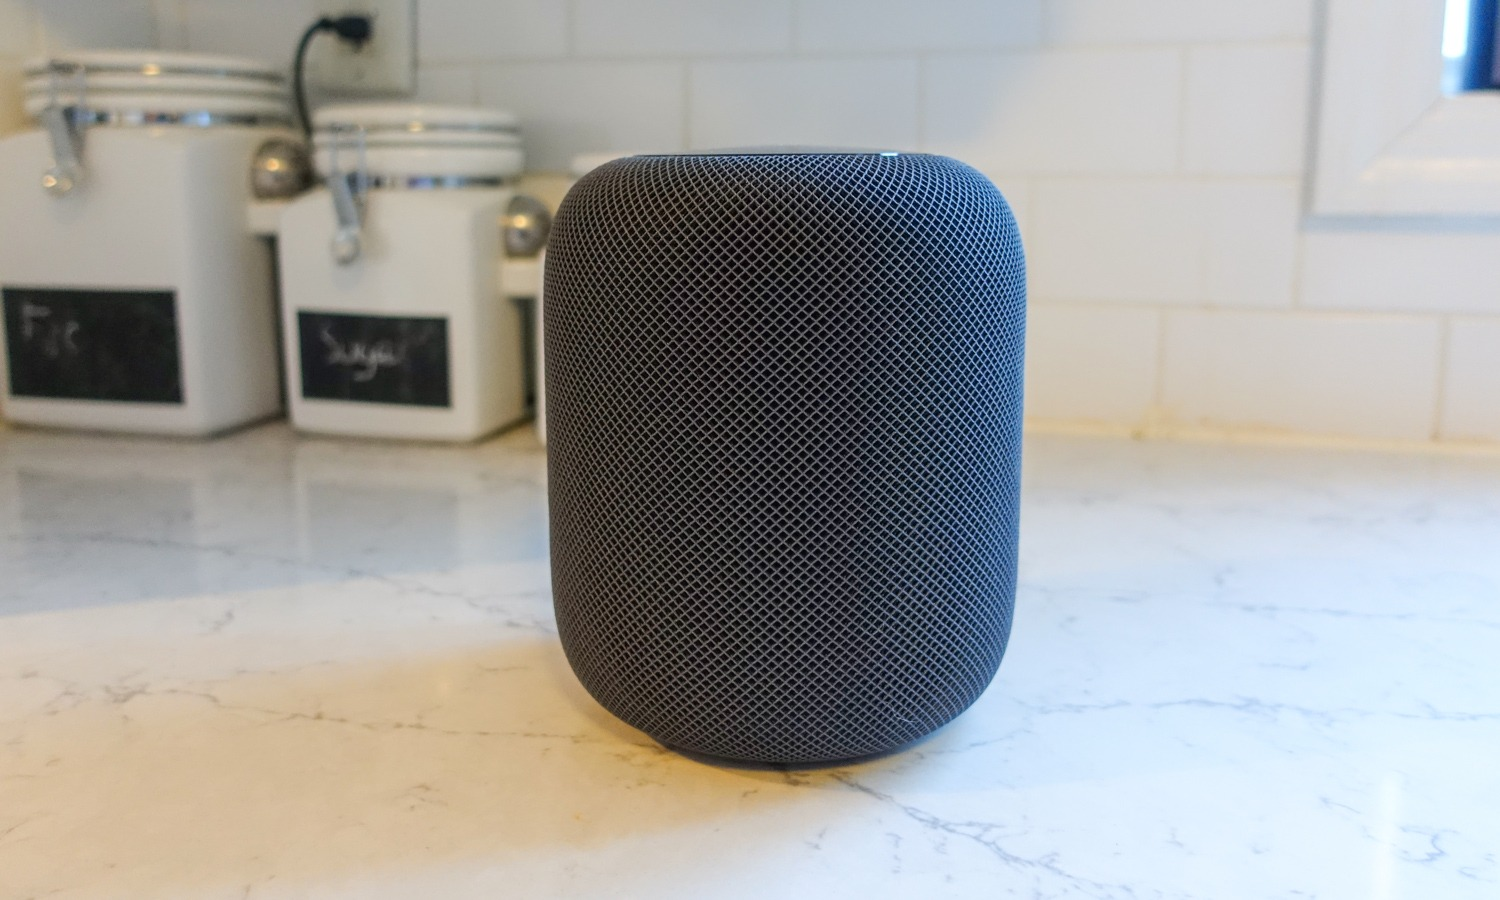 Apple Developing New Future Version of HomePod With Invisible Touch Controls